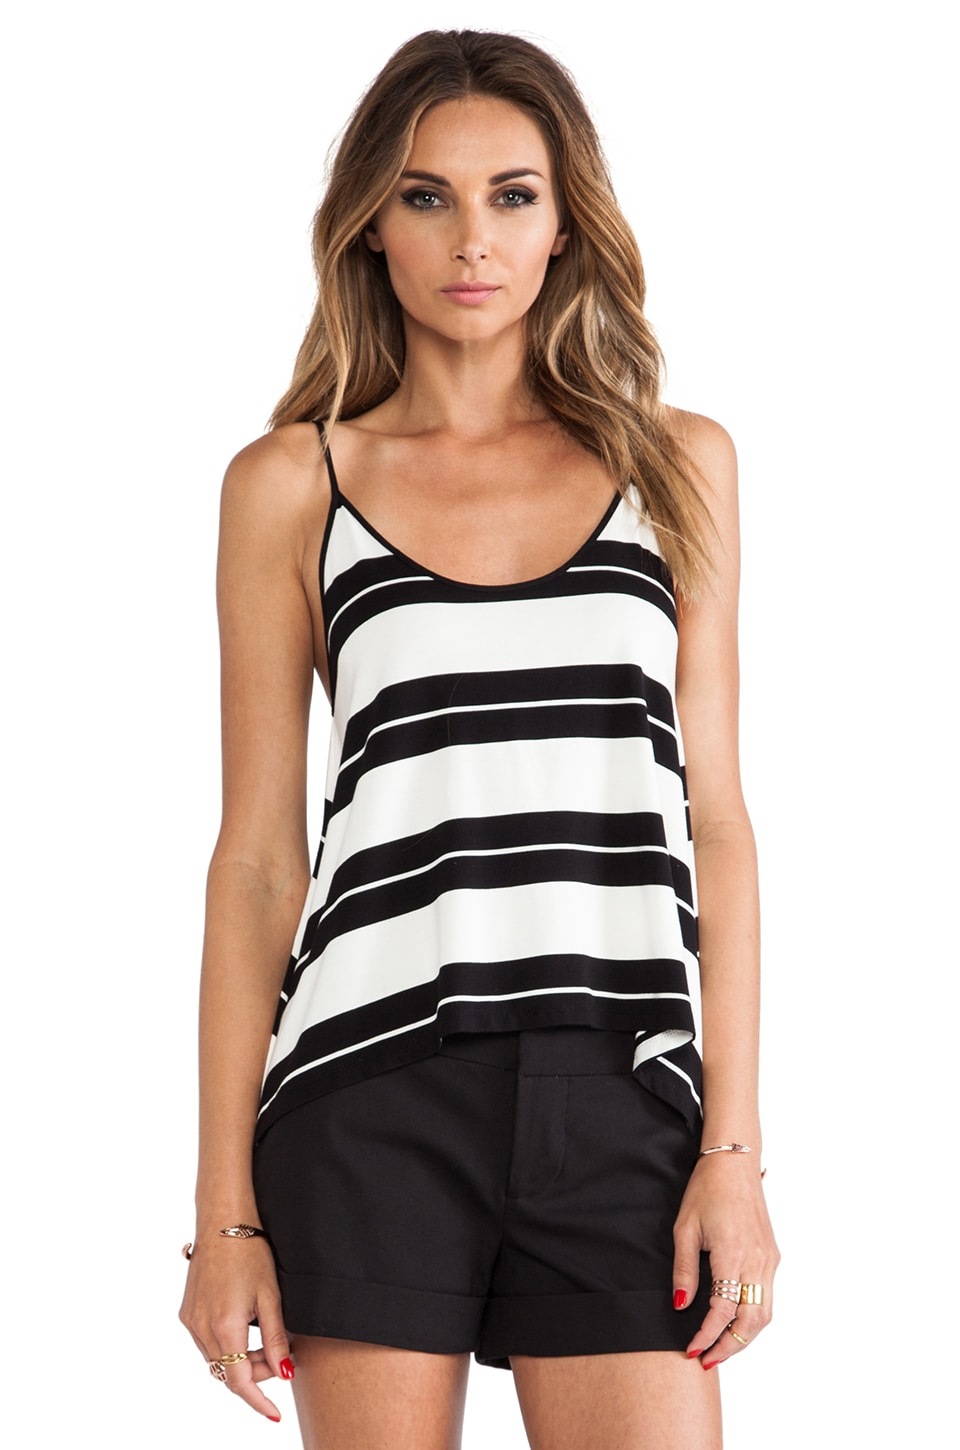 Dolce Vita Lorainne Top in Black Stripe